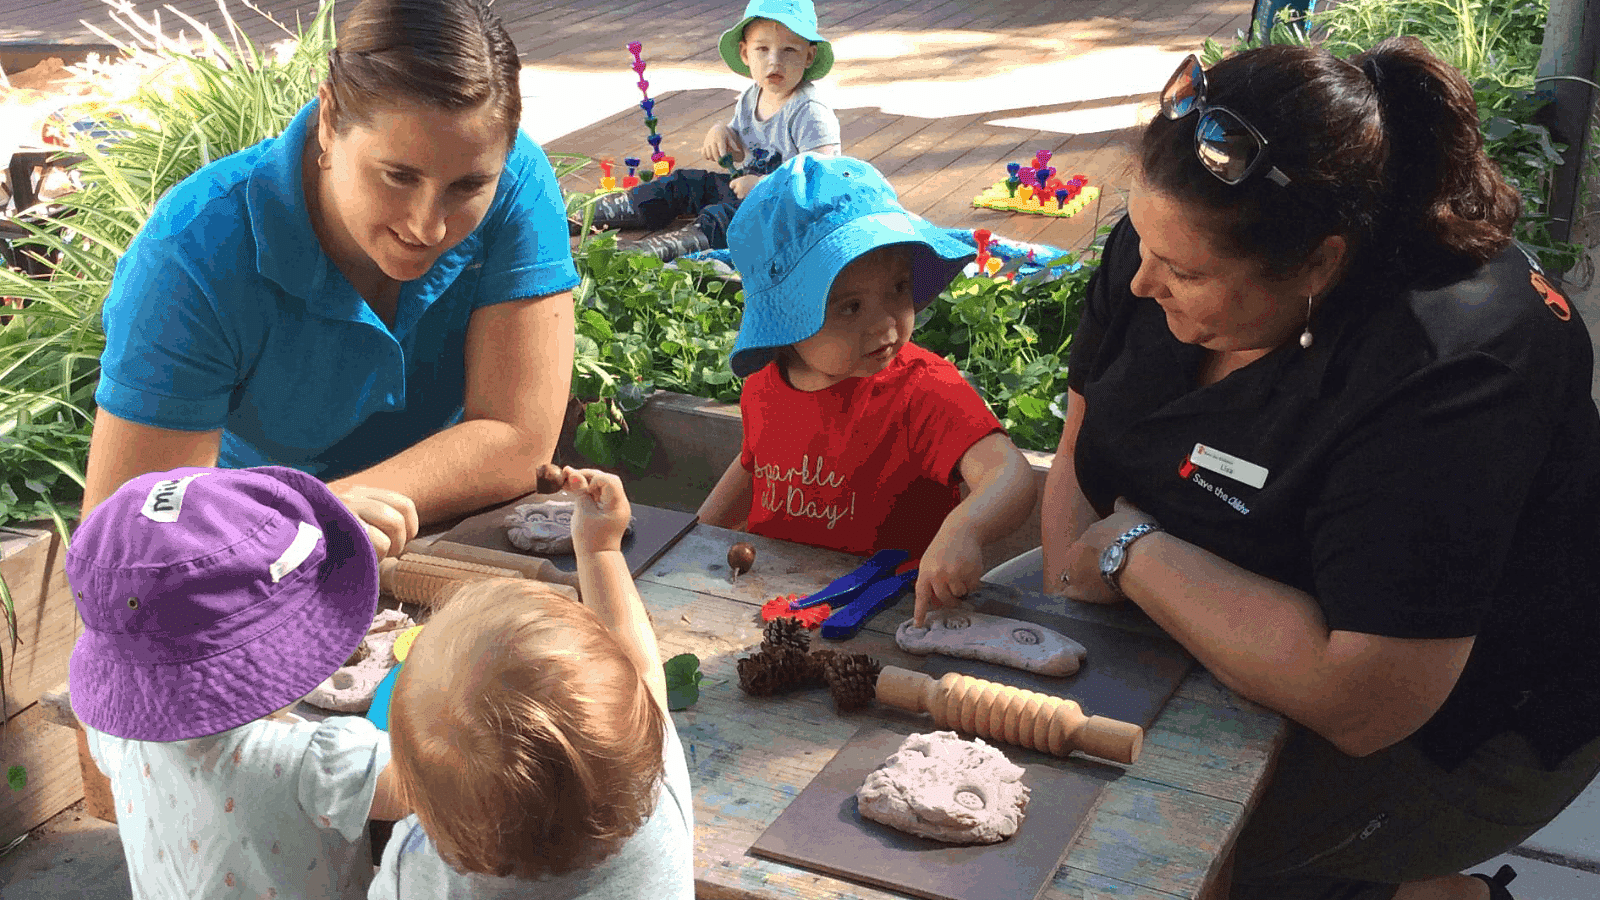 Bandara child care centre staff and children play at crafts.